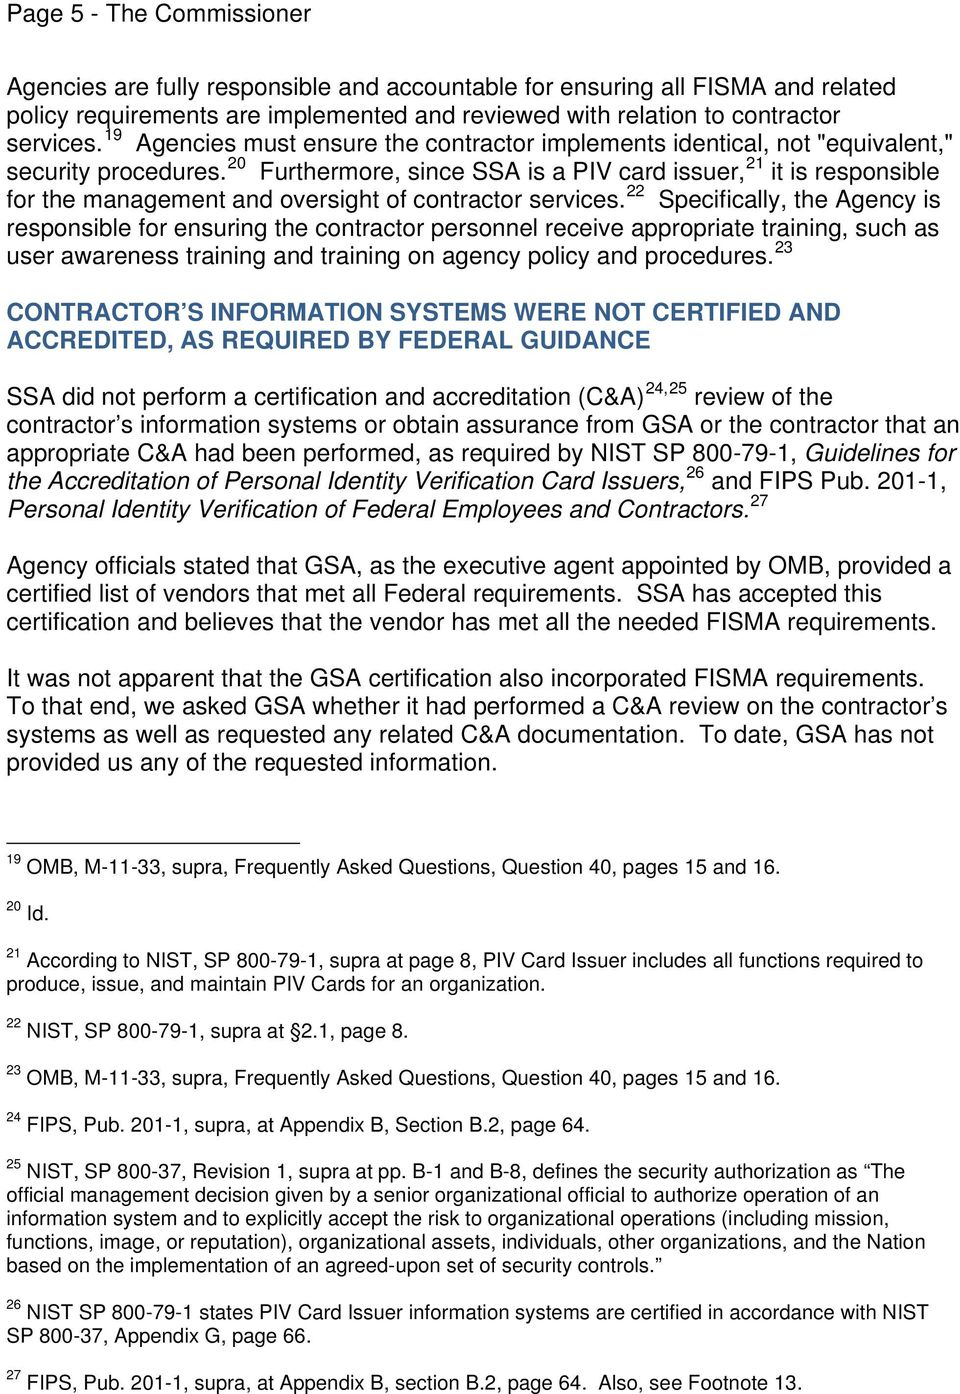 20 Furthermore, since SSA is a PIV card issuer, 21 it is responsible for the management and oversight of contractor services.